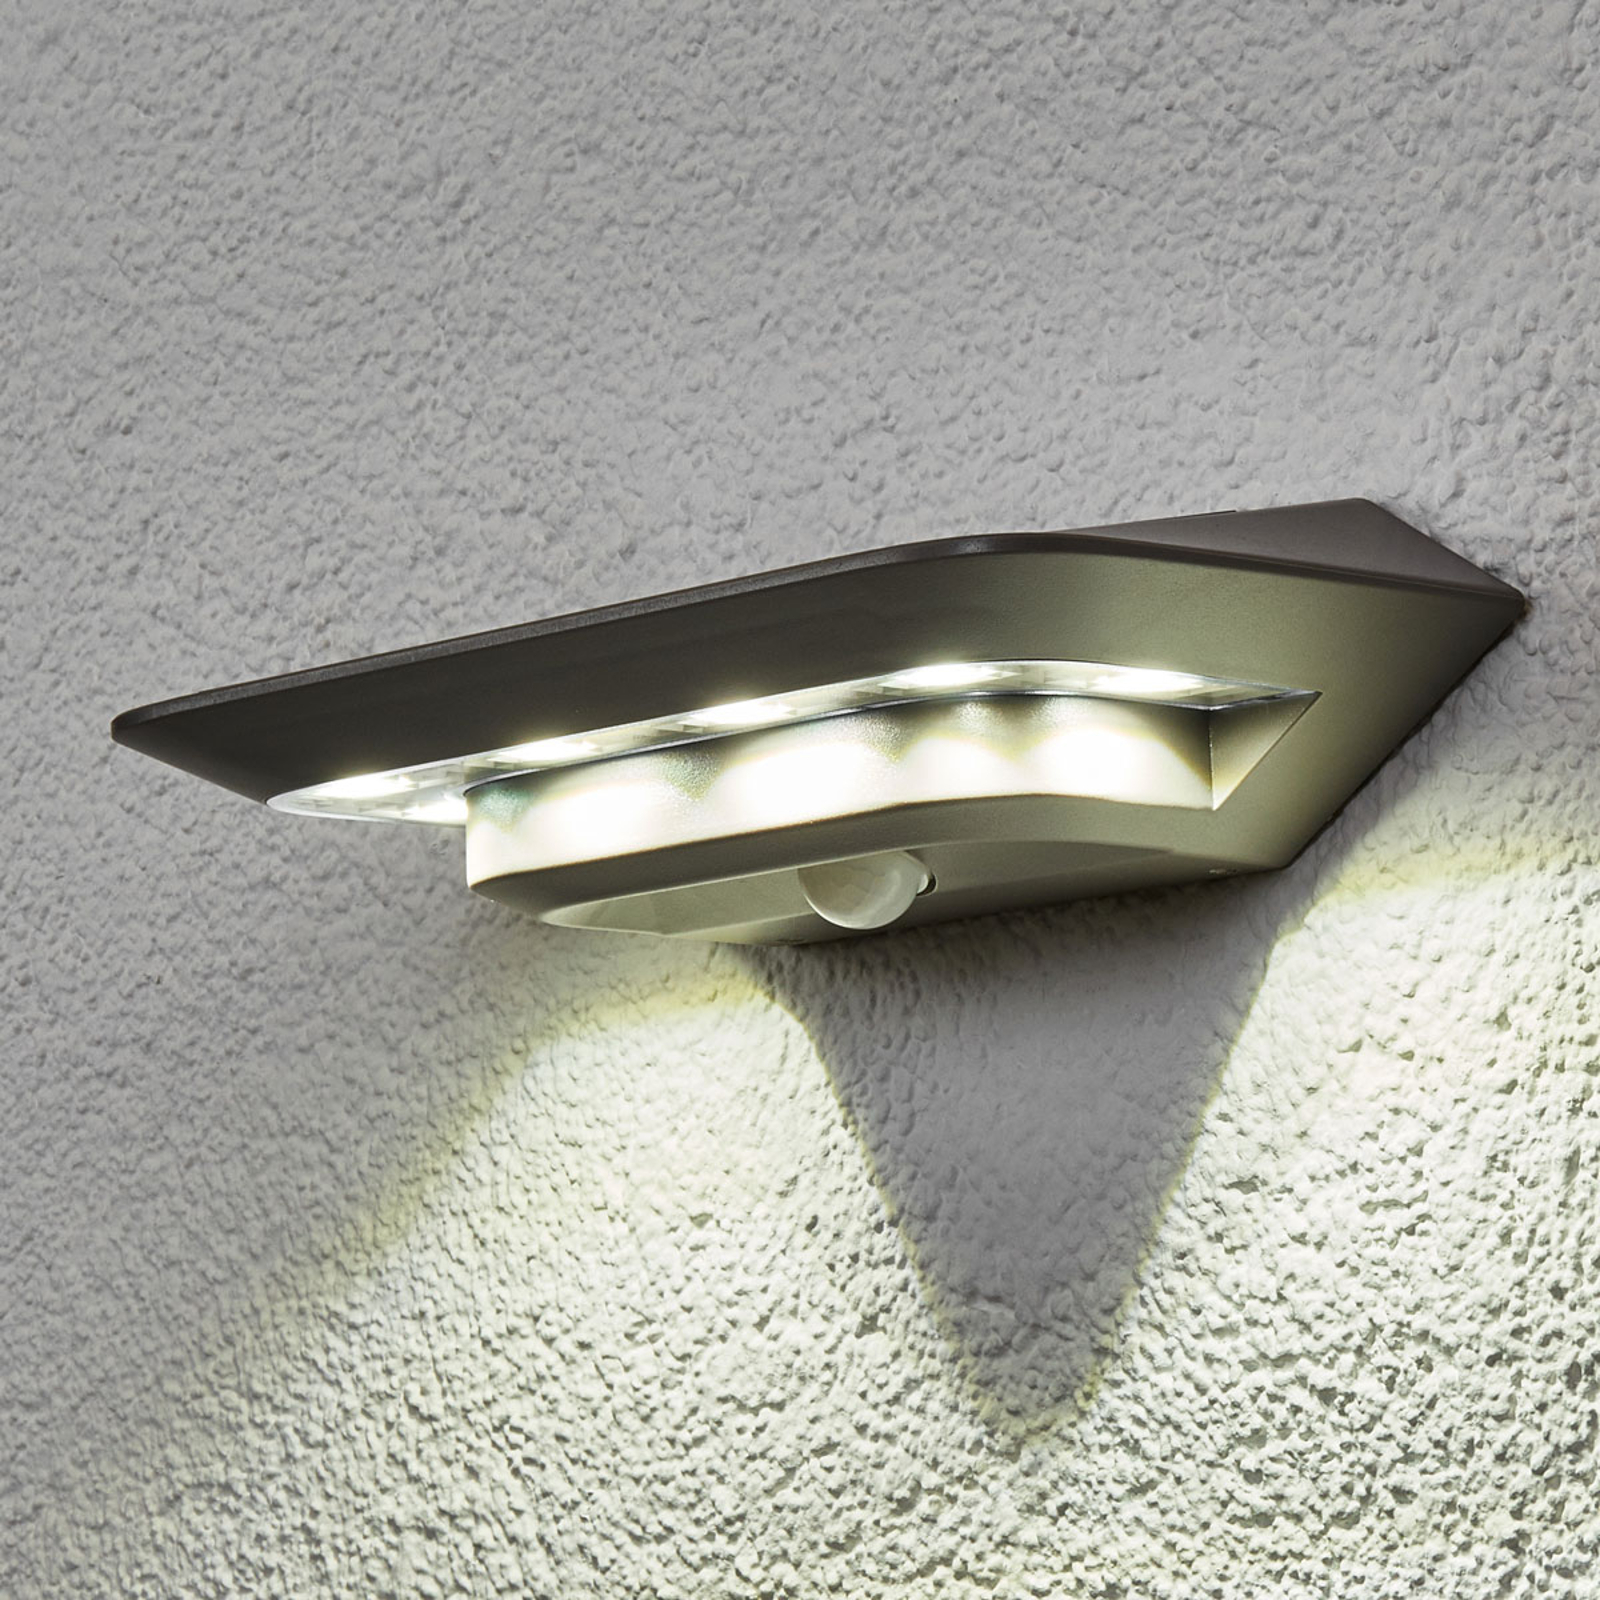 Applique solare LED Ghost con sensore di movimento